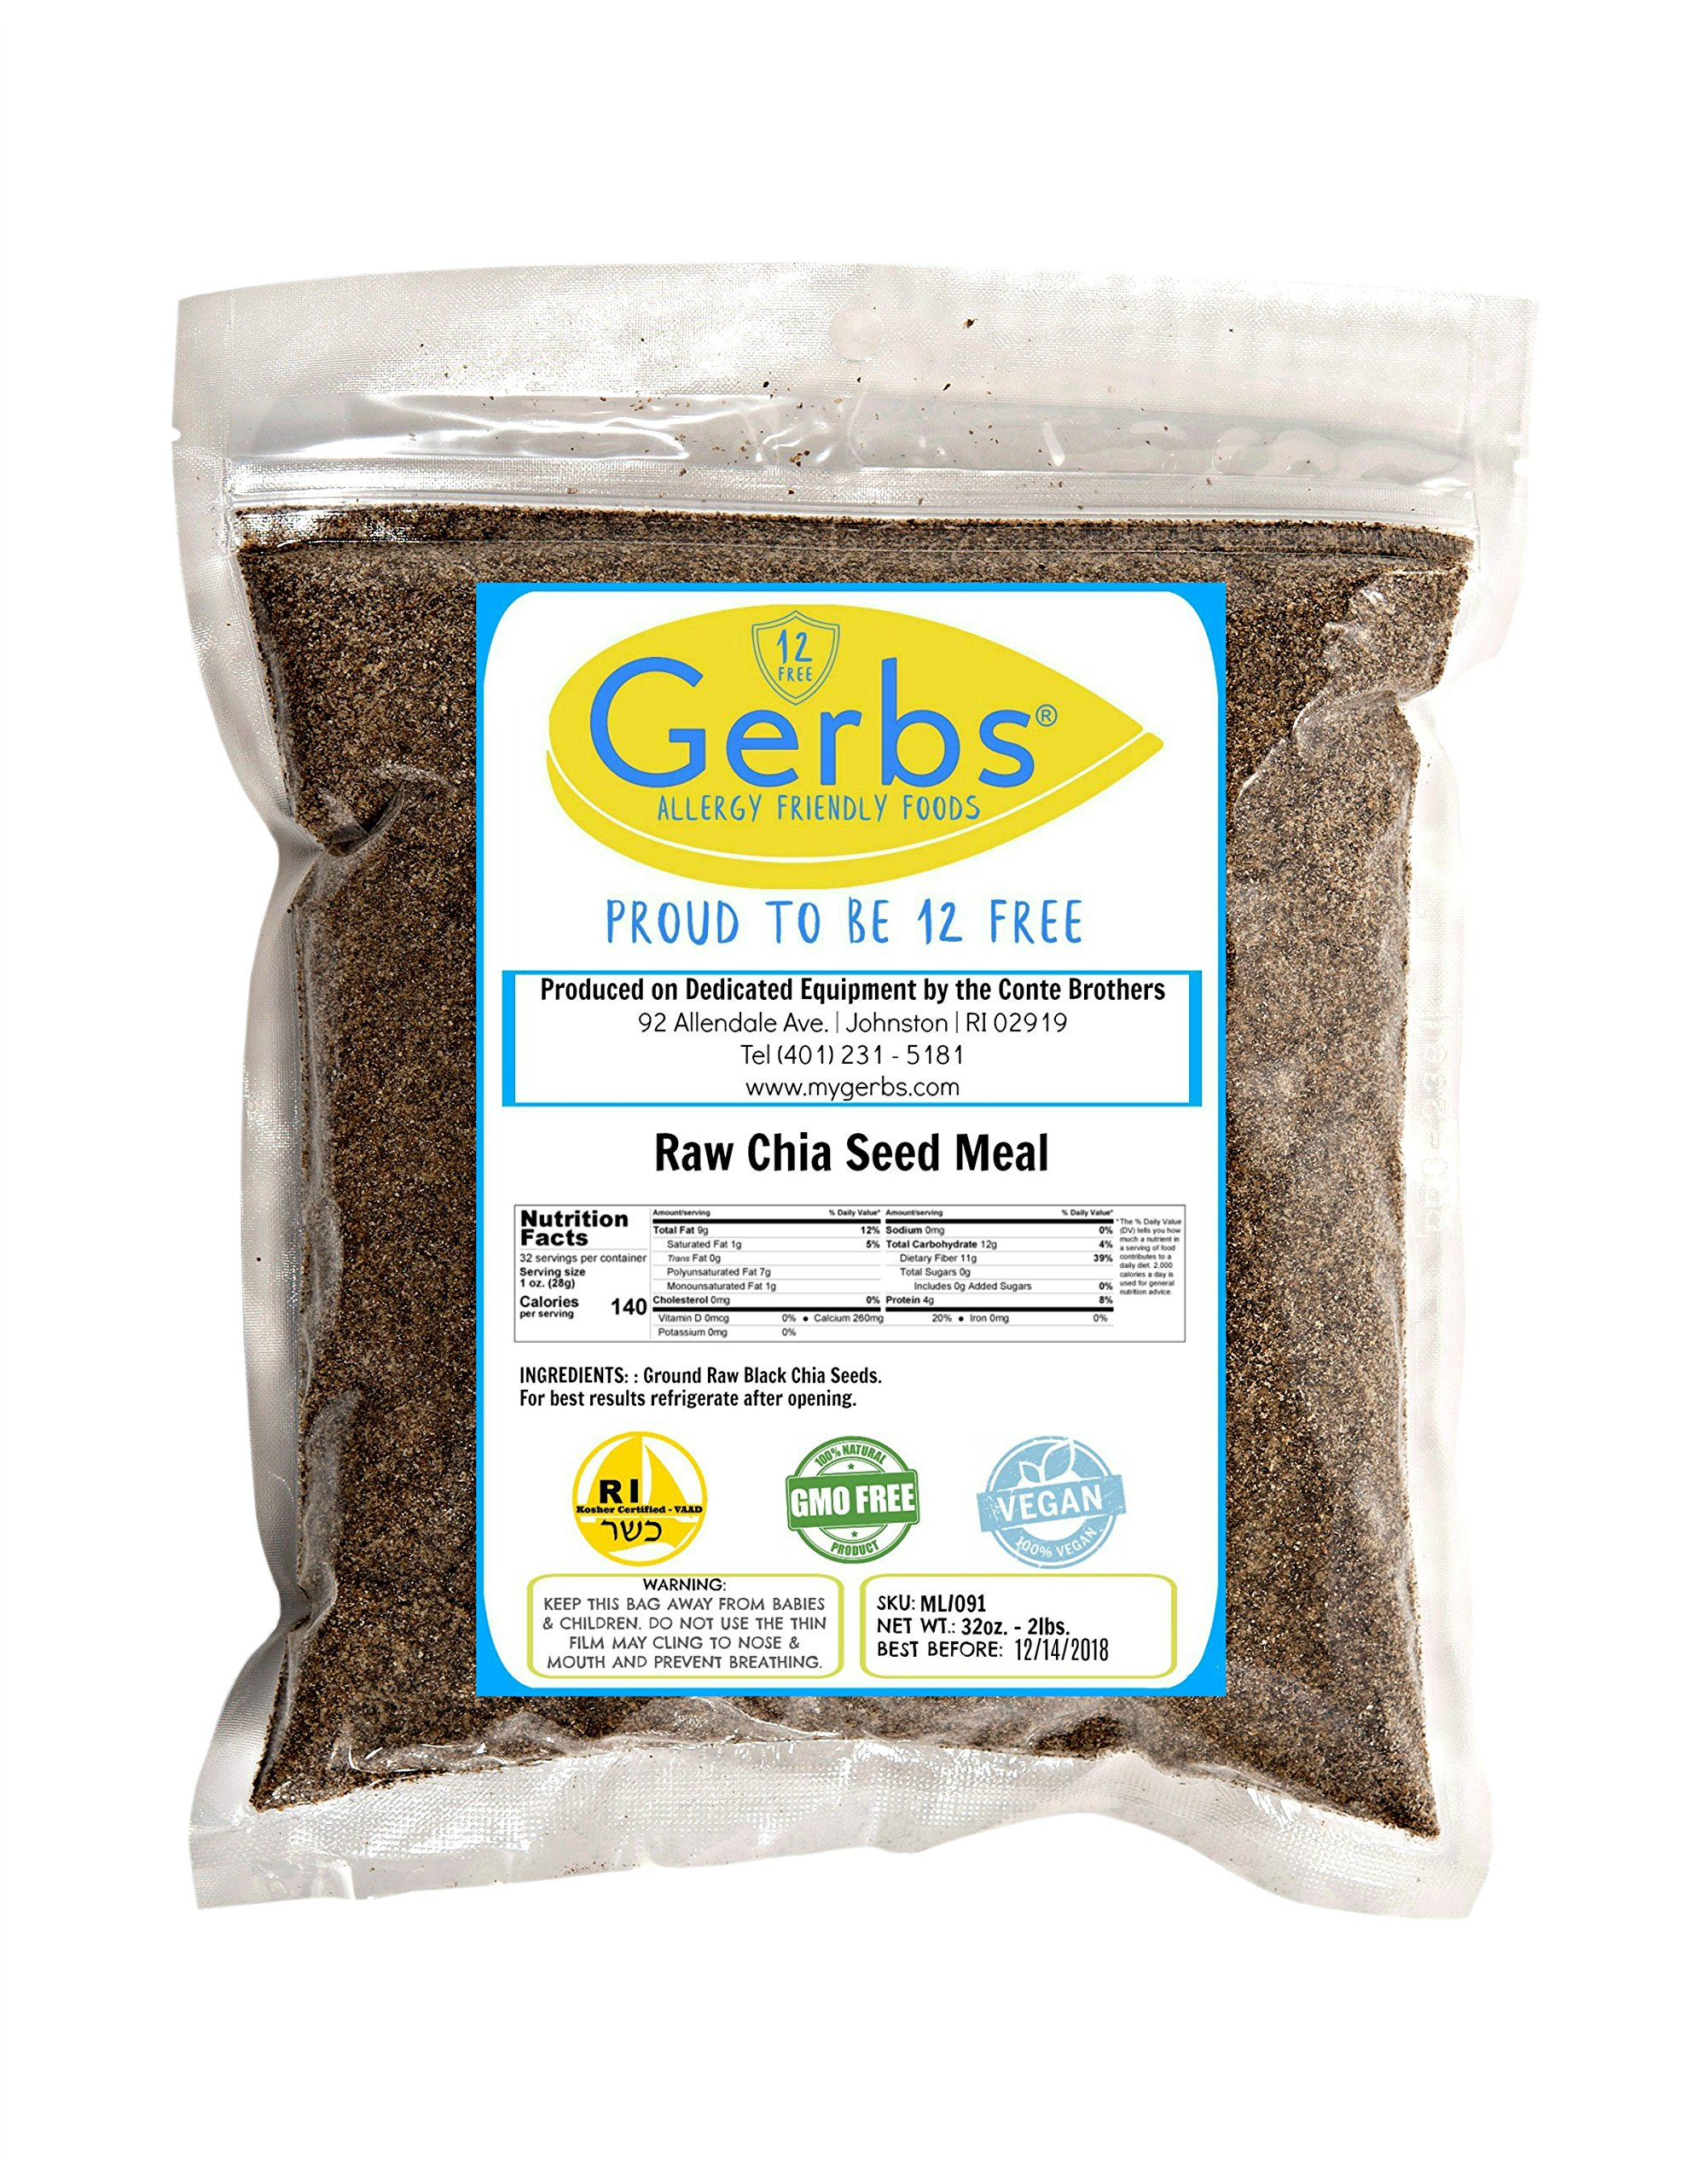 Ground Black Chia Seed Meal 2 LBS By Gerbs - Top 12 Food Allergy Free & NON GMO - Vegan & Kosher – Premium Full Oil Content Raw Chia Protein Powder